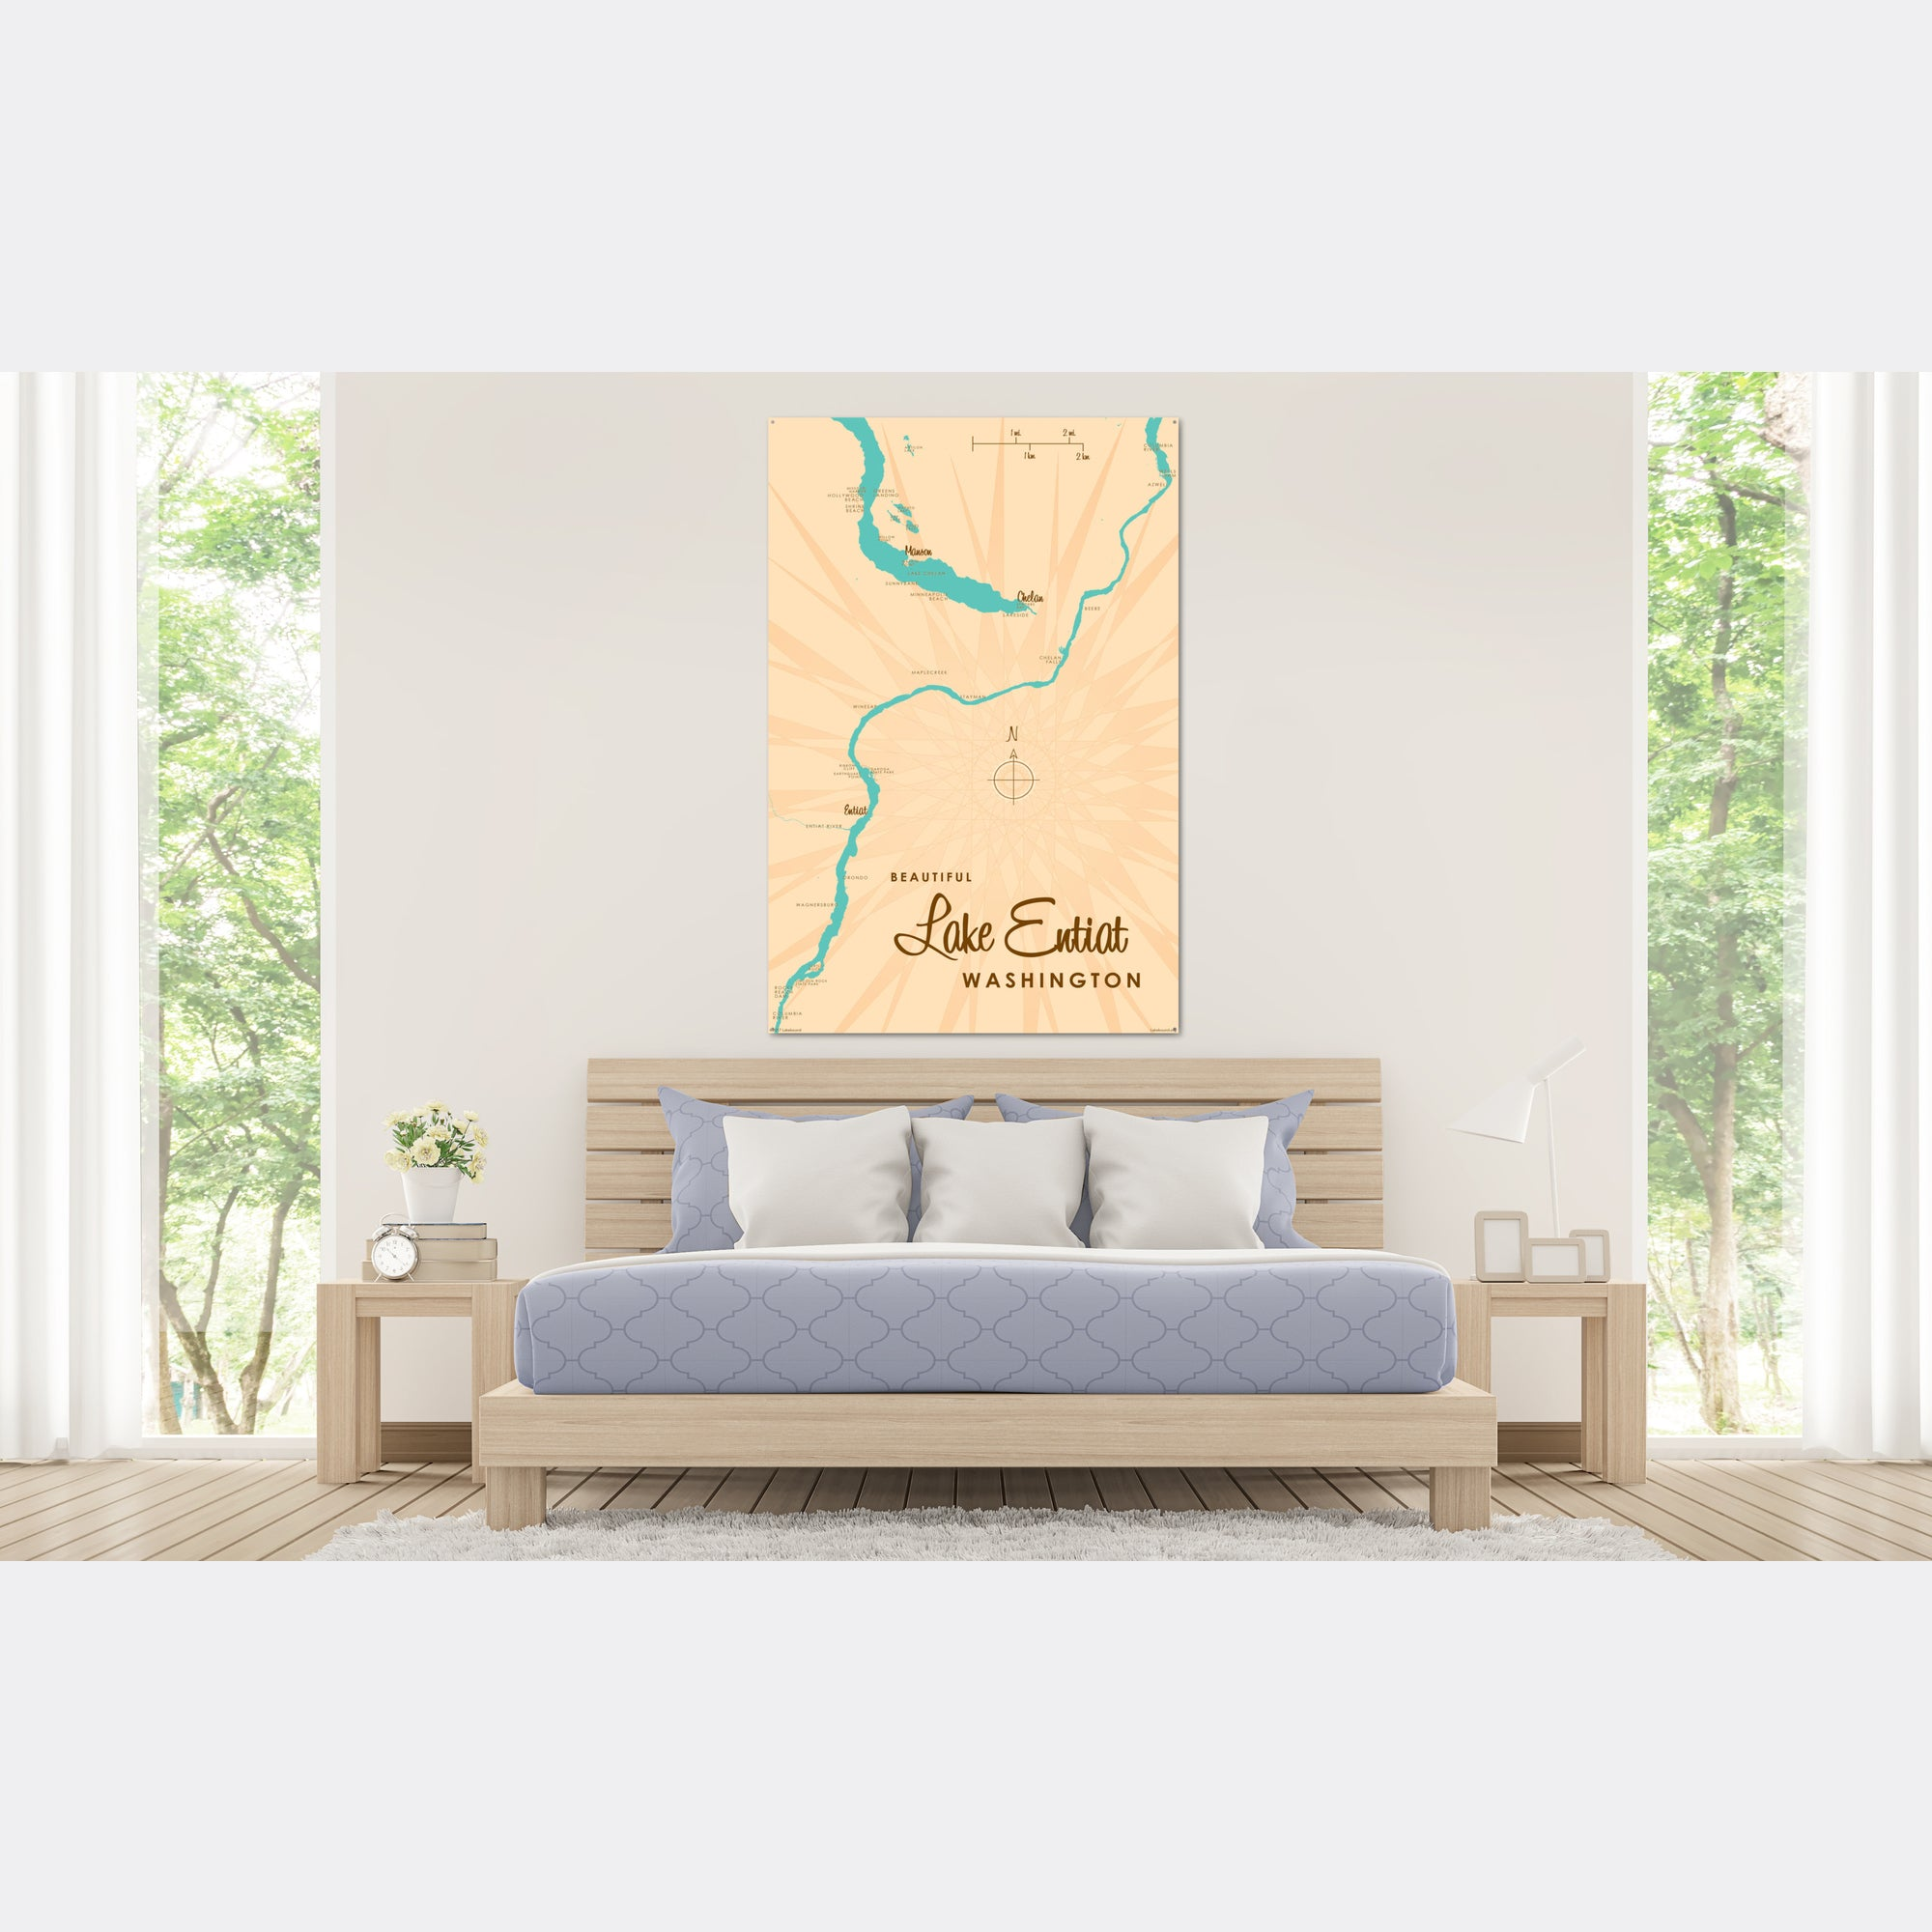 Lake Entiat Washington, Metal Sign Map Art